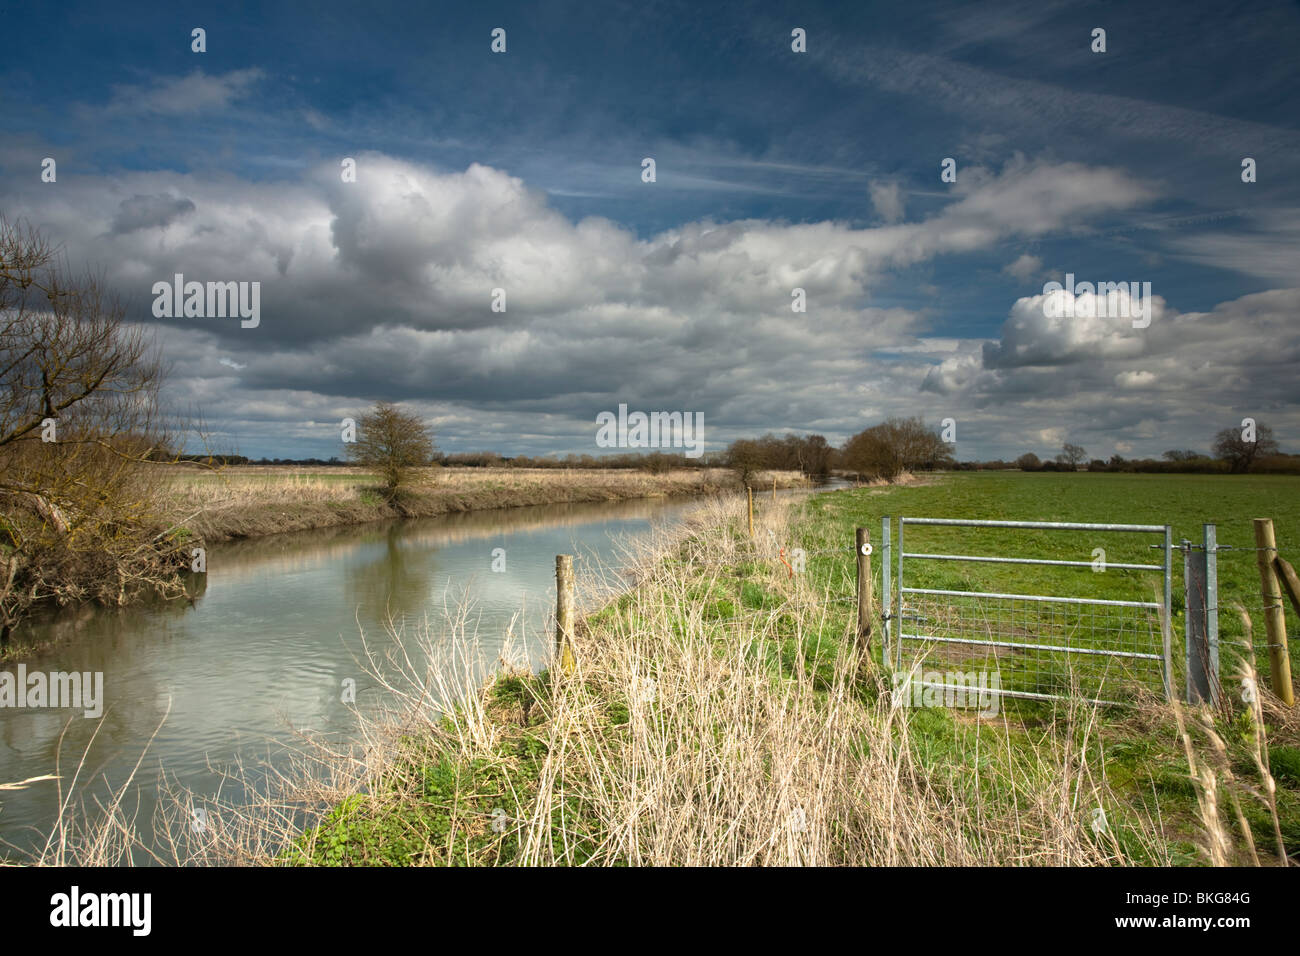 The upper reaches of the River Thames near Castle Eaton in The Cotswolds, Wiltshire, Uk - Stock Image